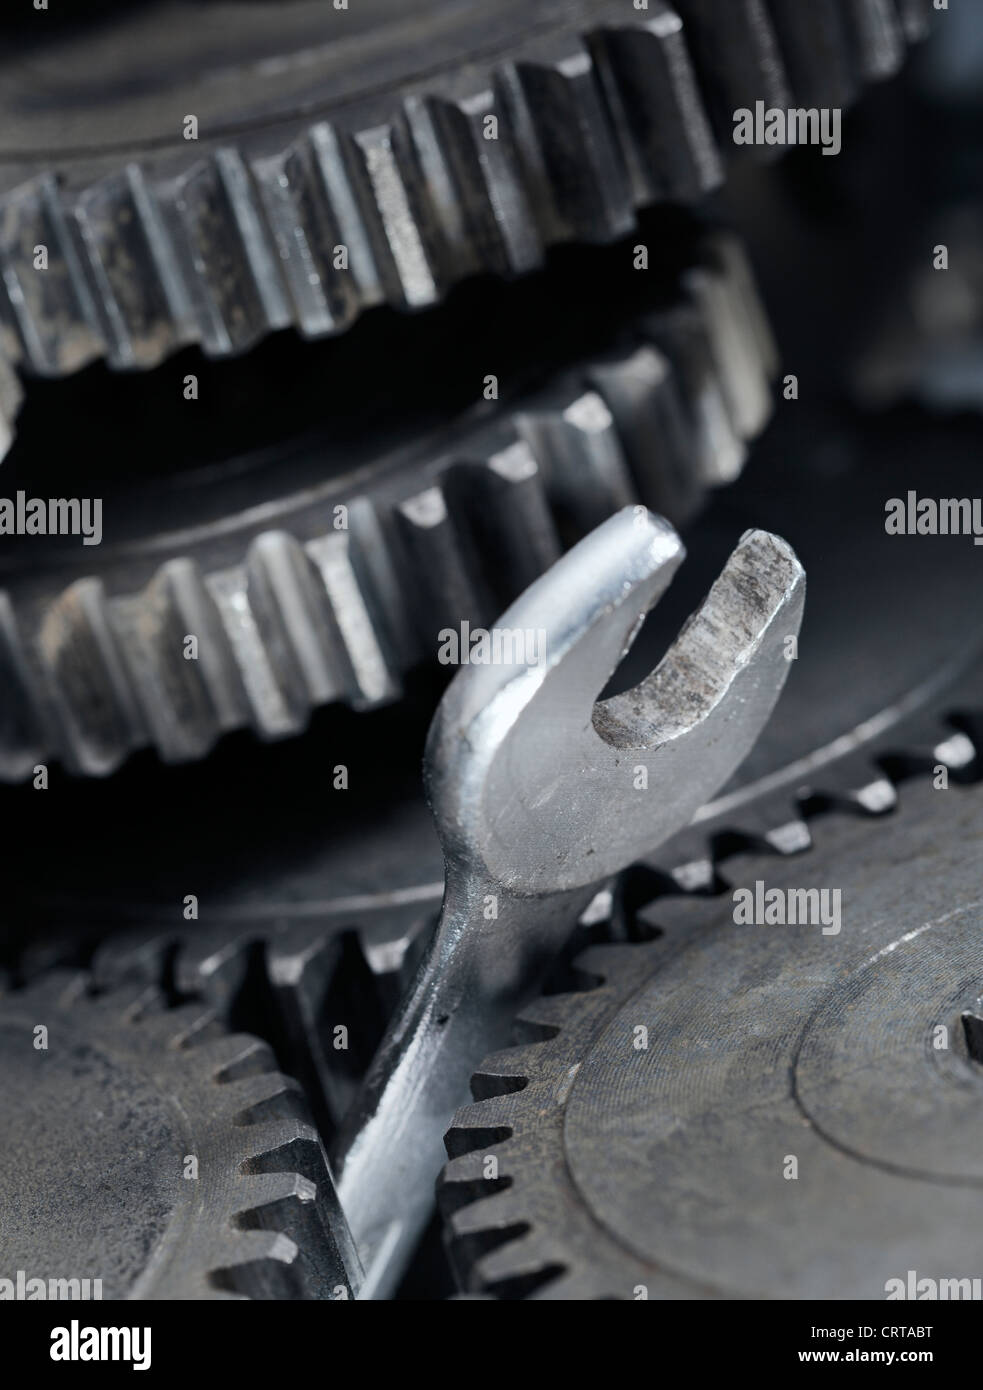 A Spanner Wrench stuck between cog gear wheels. - Stock Image